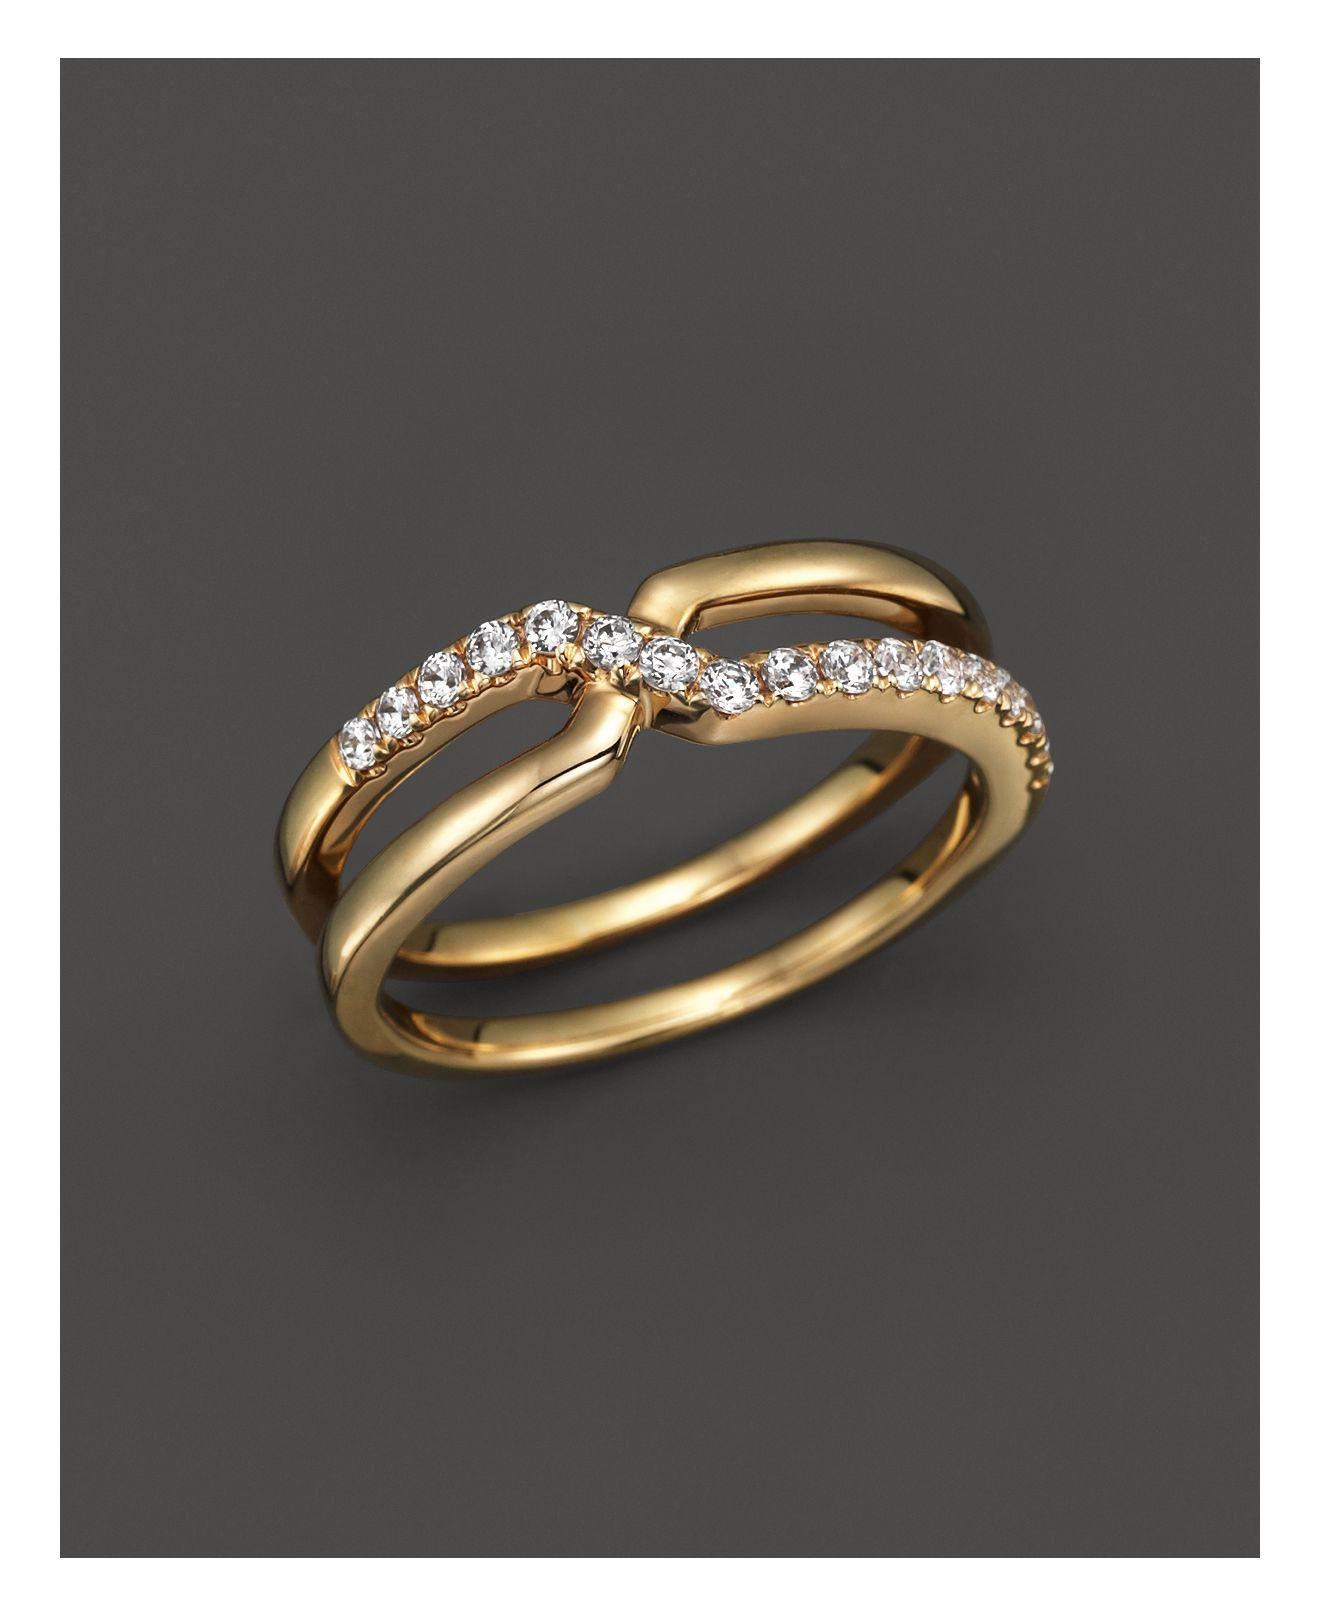 Lyst Bloomingdales Diamond Crossover Ring In 14k Yellow Gold 25